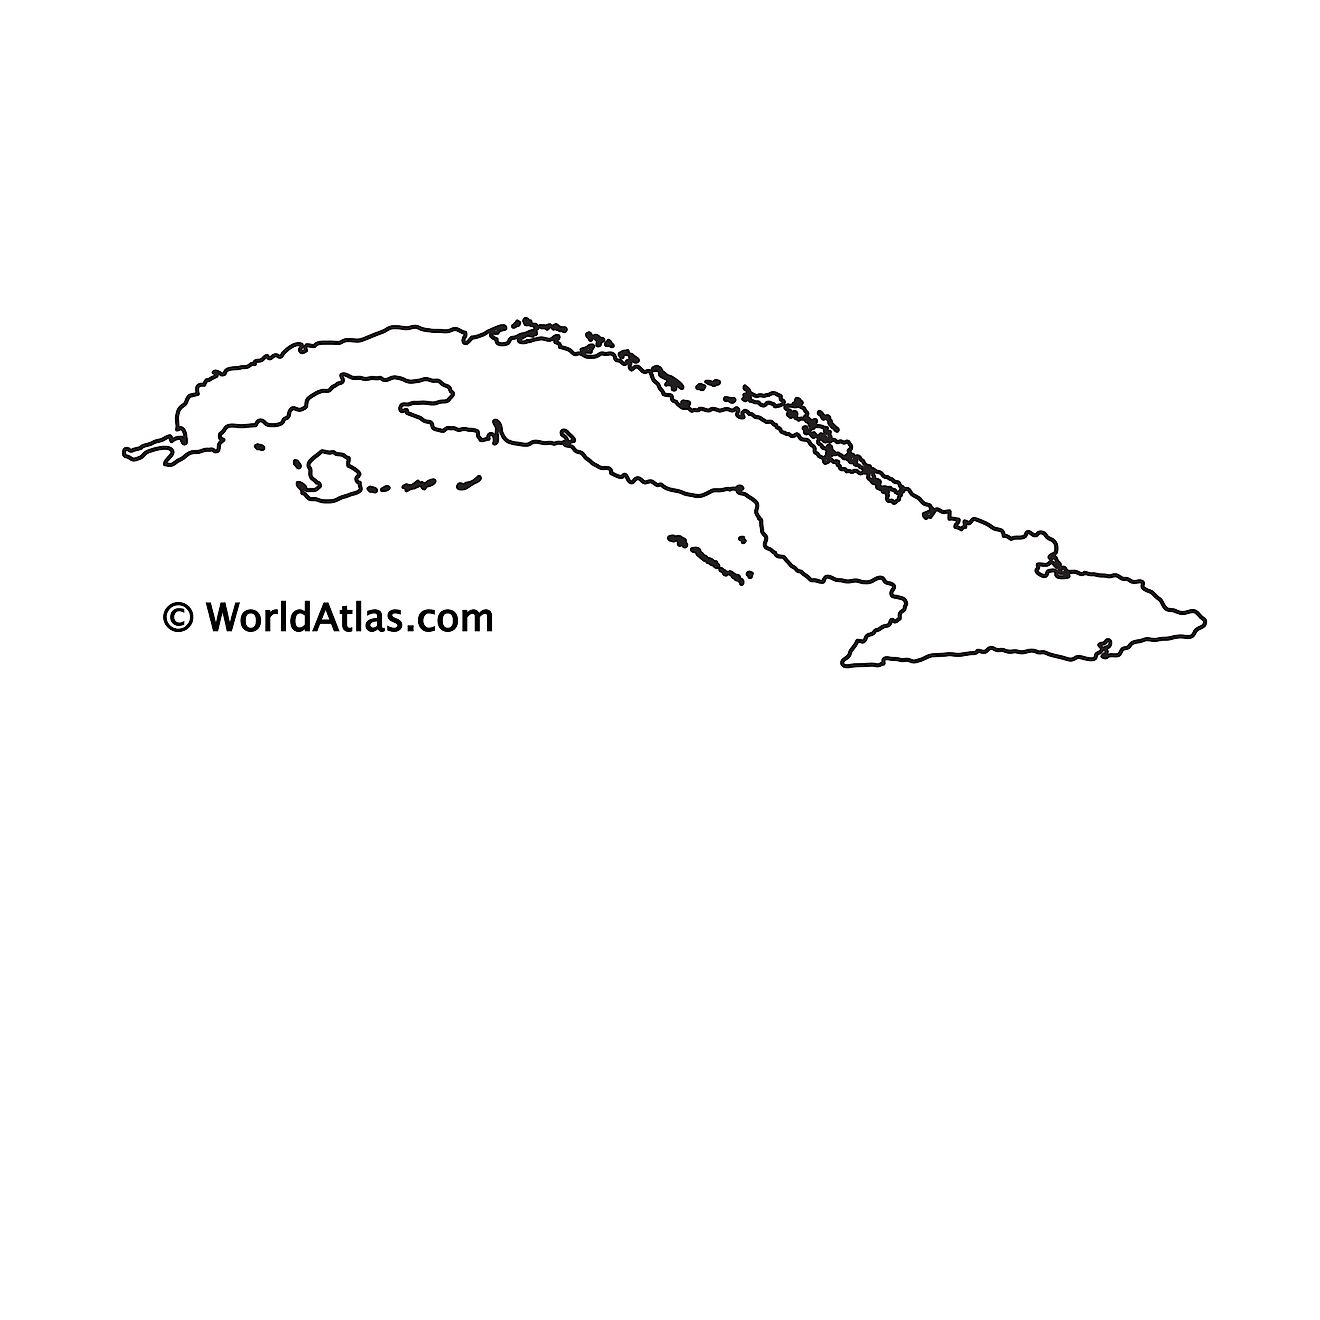 Blank Outline Map of Cuba